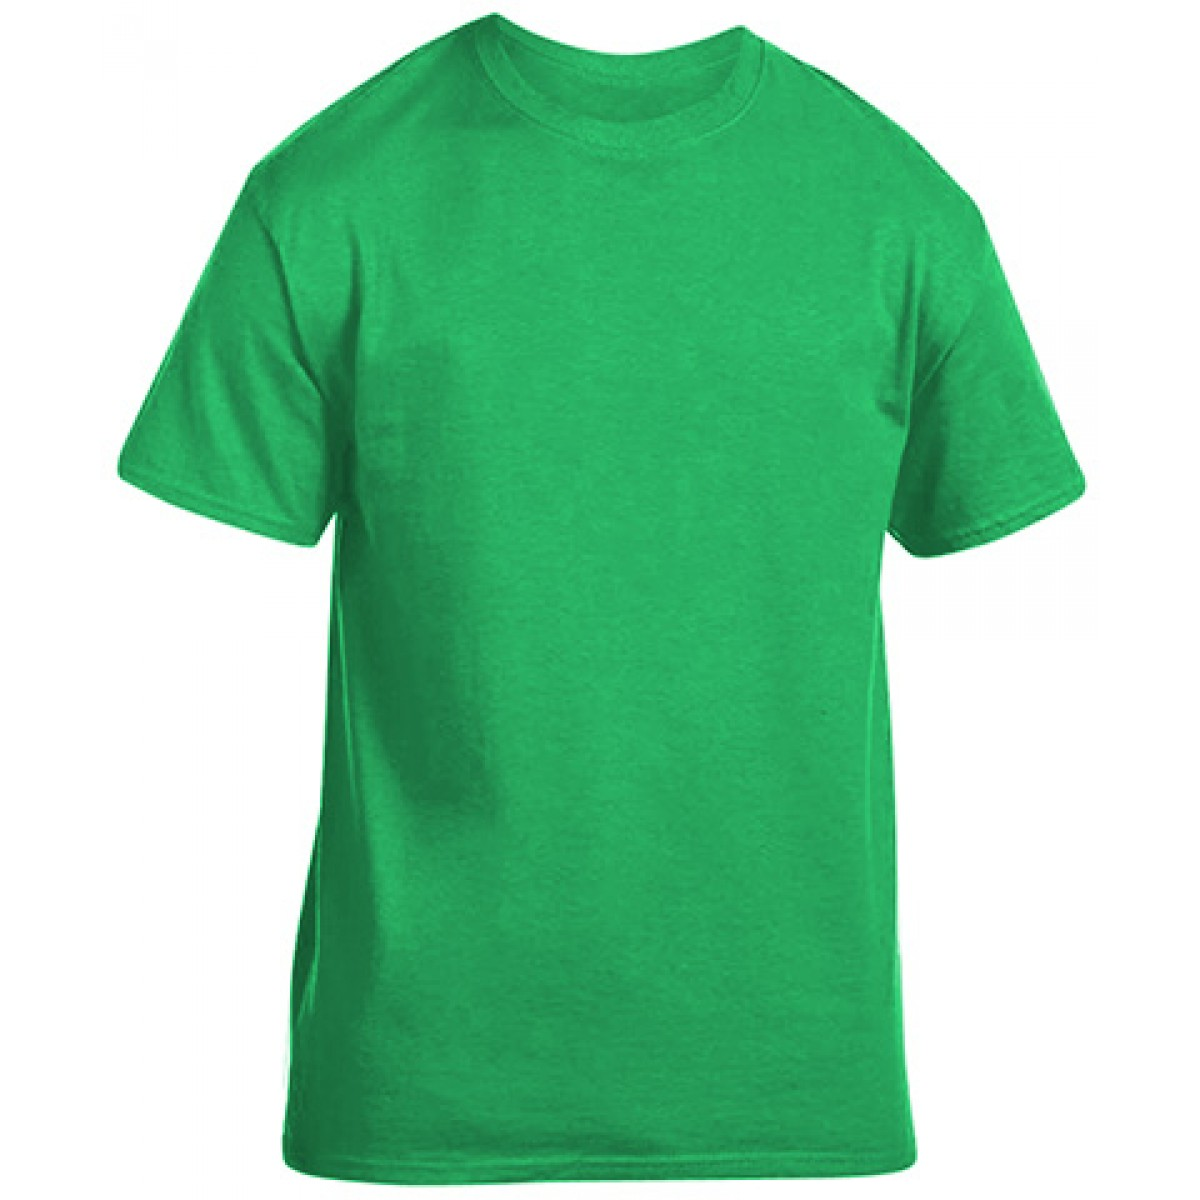 Soft 100% Cotton T-Shirt-Electric Green -S